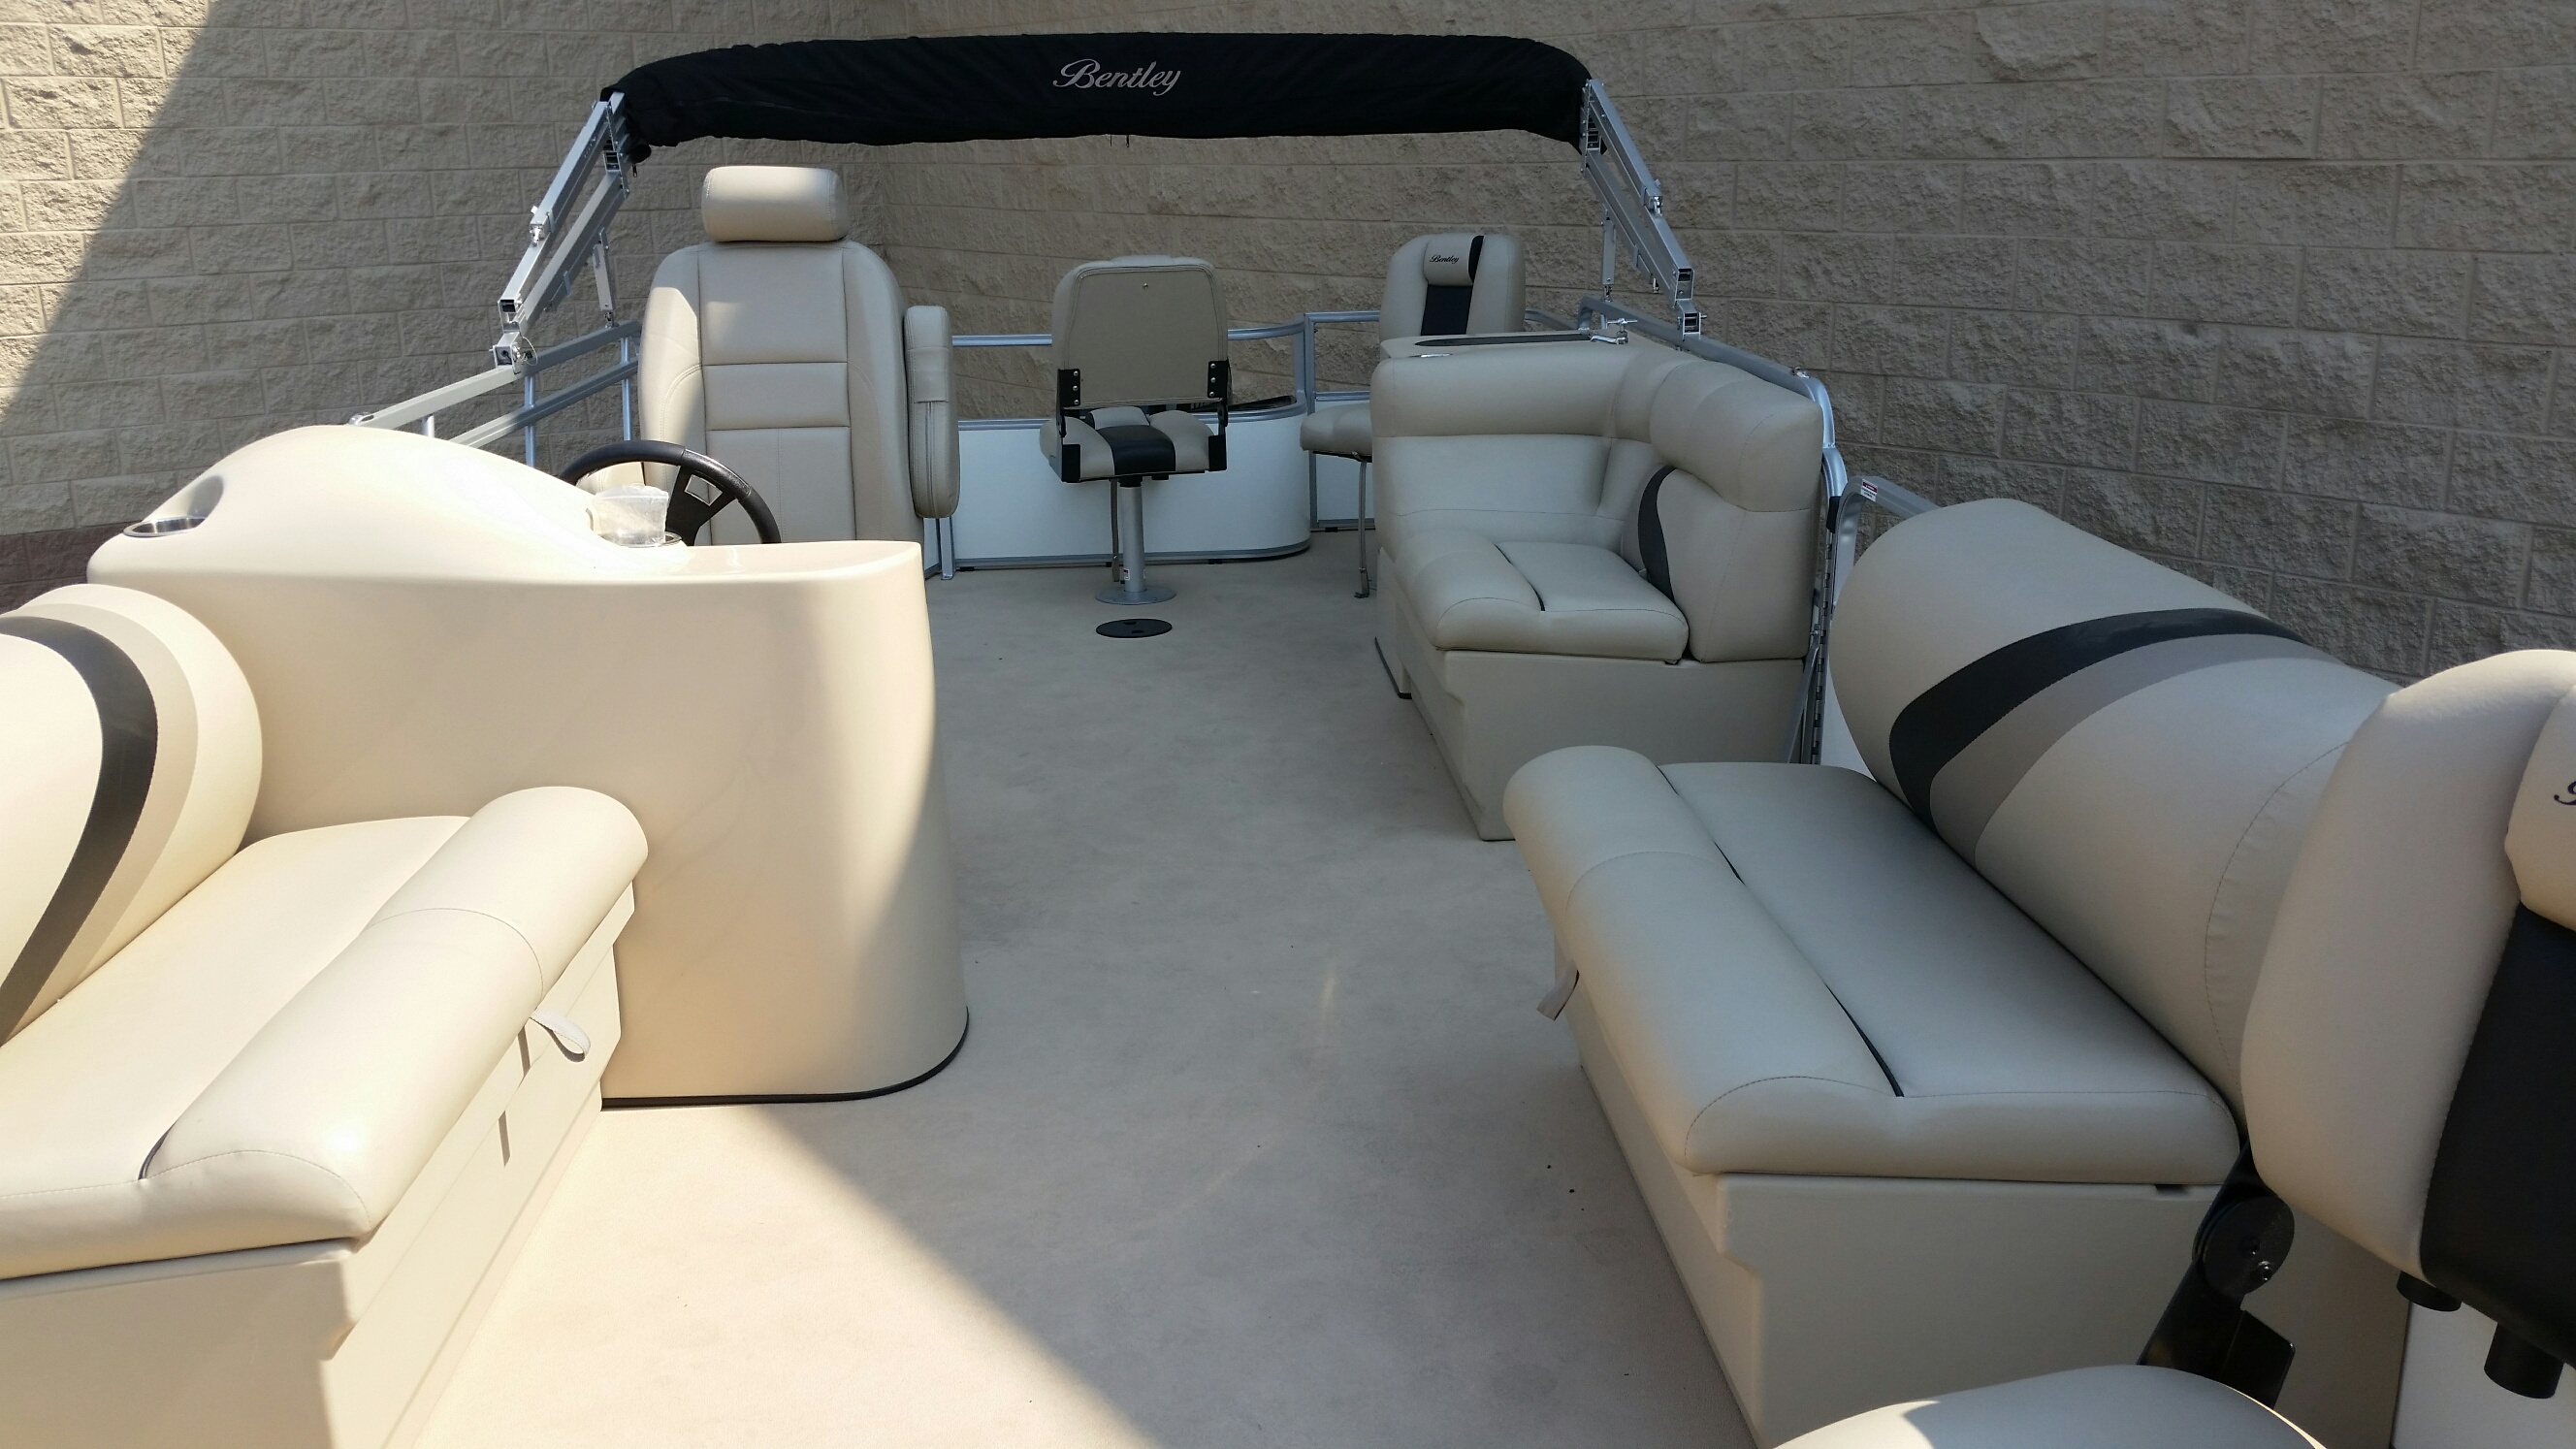 manufacturing boats builders dealers near today you pontoon a boat dealer bentley encore quality